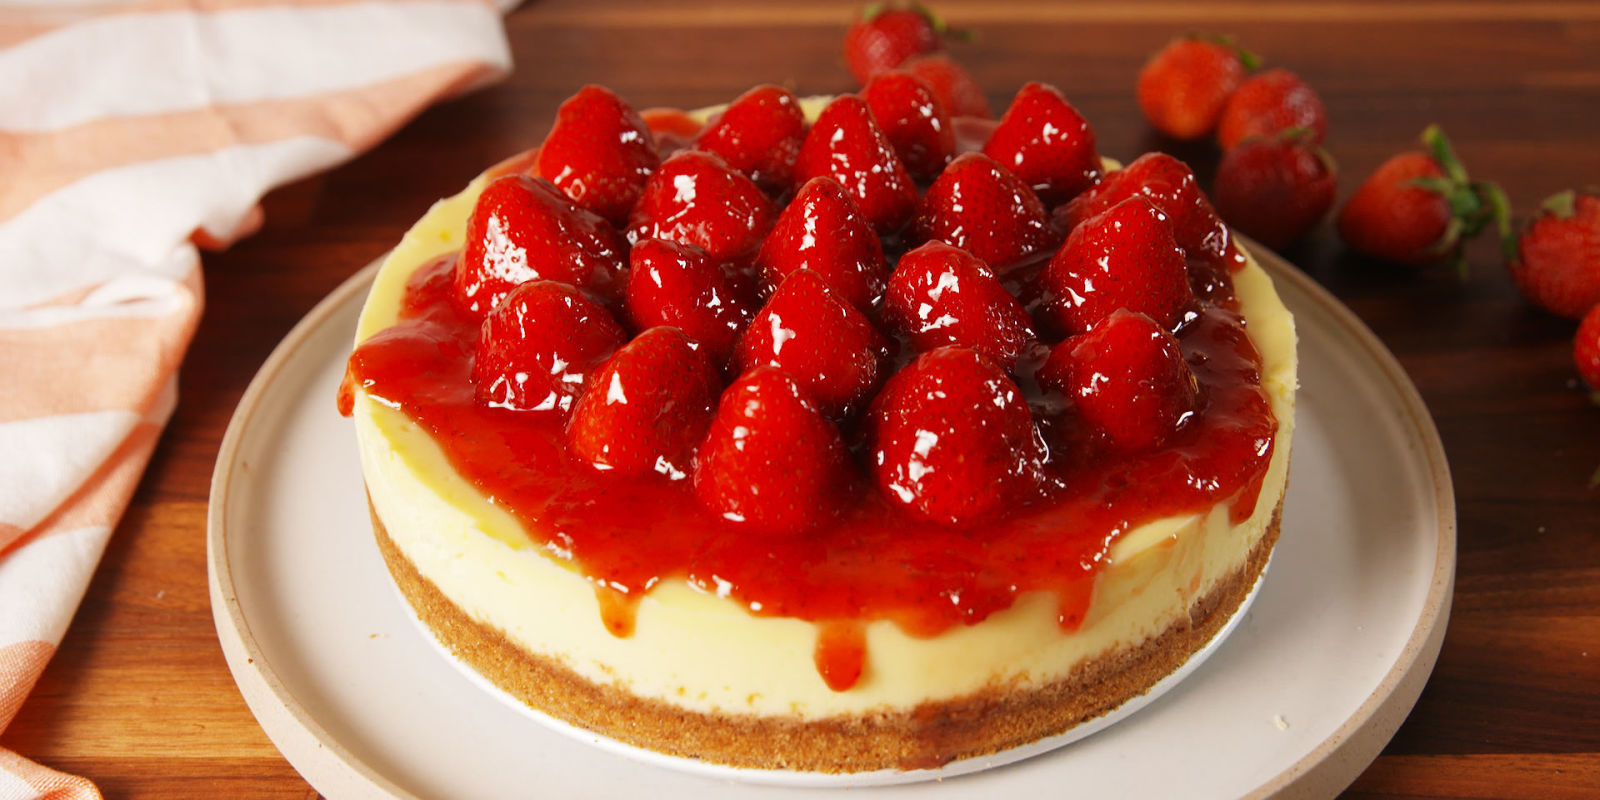 Easy Strawberry Cheesecake Recipes - How to Make Strawberry Cheesecake ...